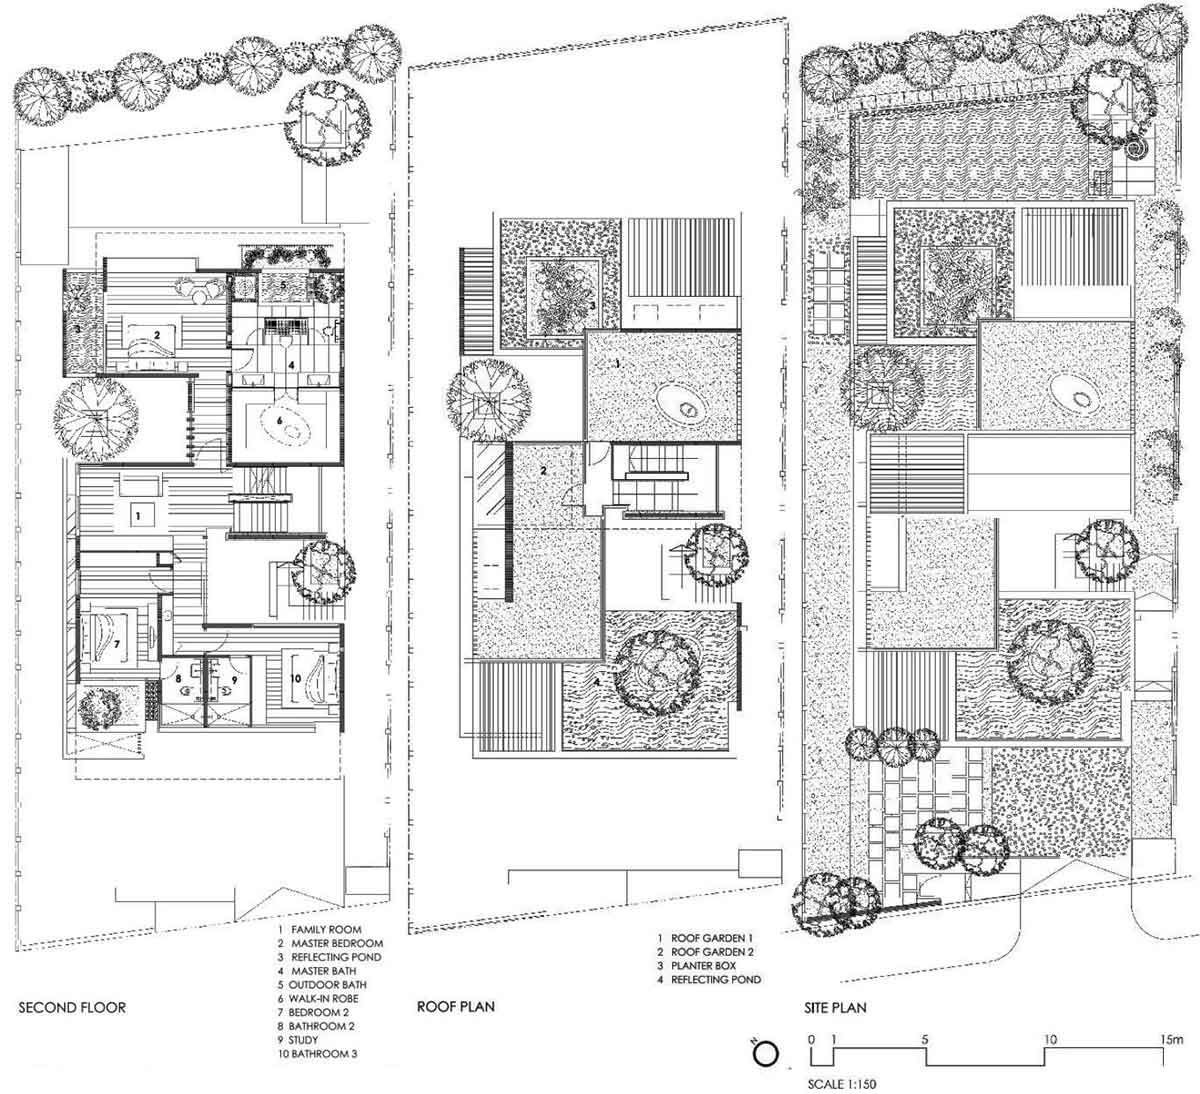 Second Floor Roof Site Plans Sunset Vale House Singapore By WOW Architects